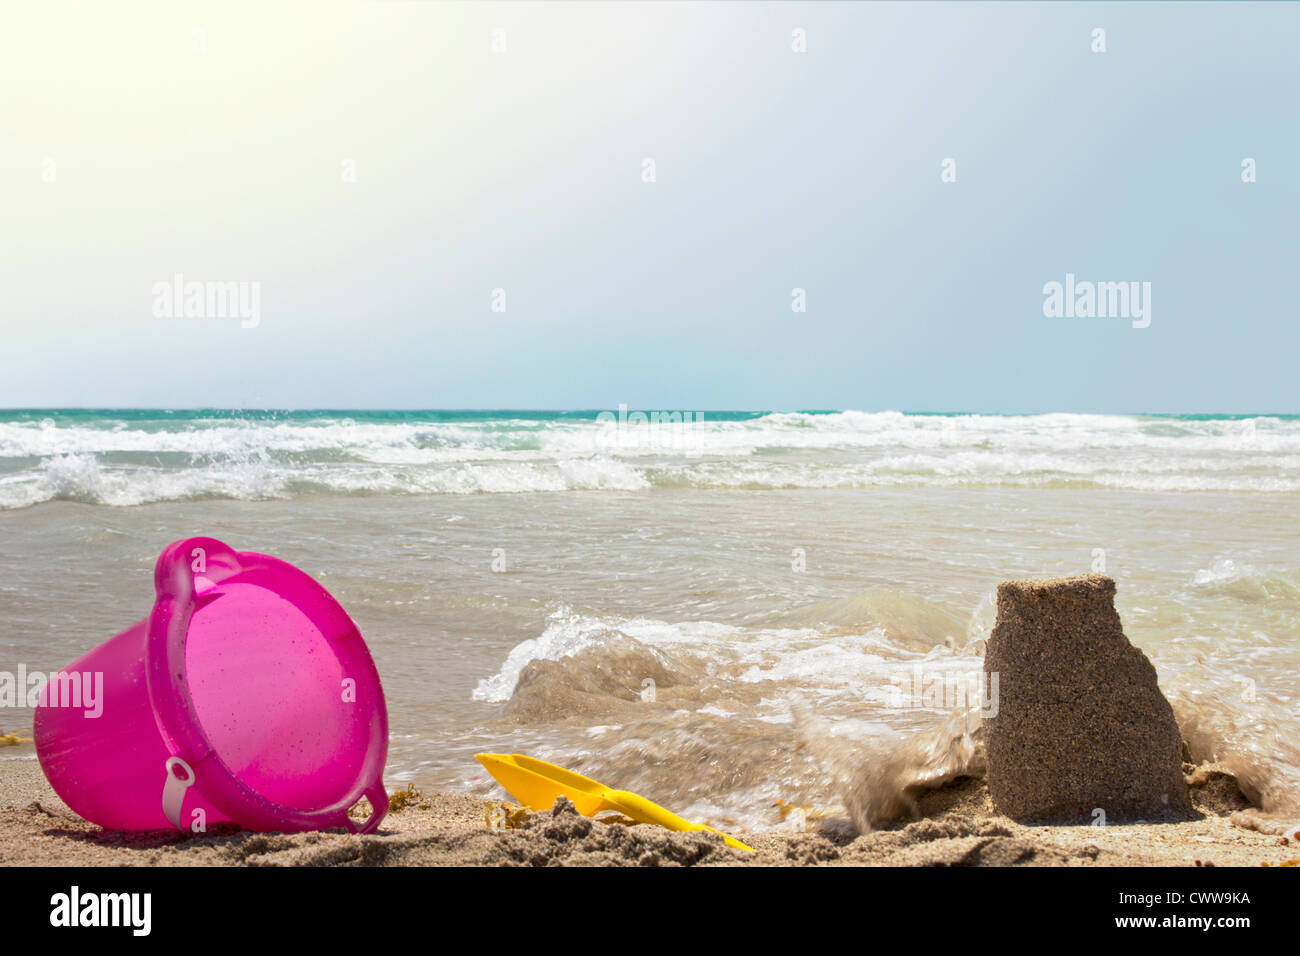 toys lying on the beach - Stock Image